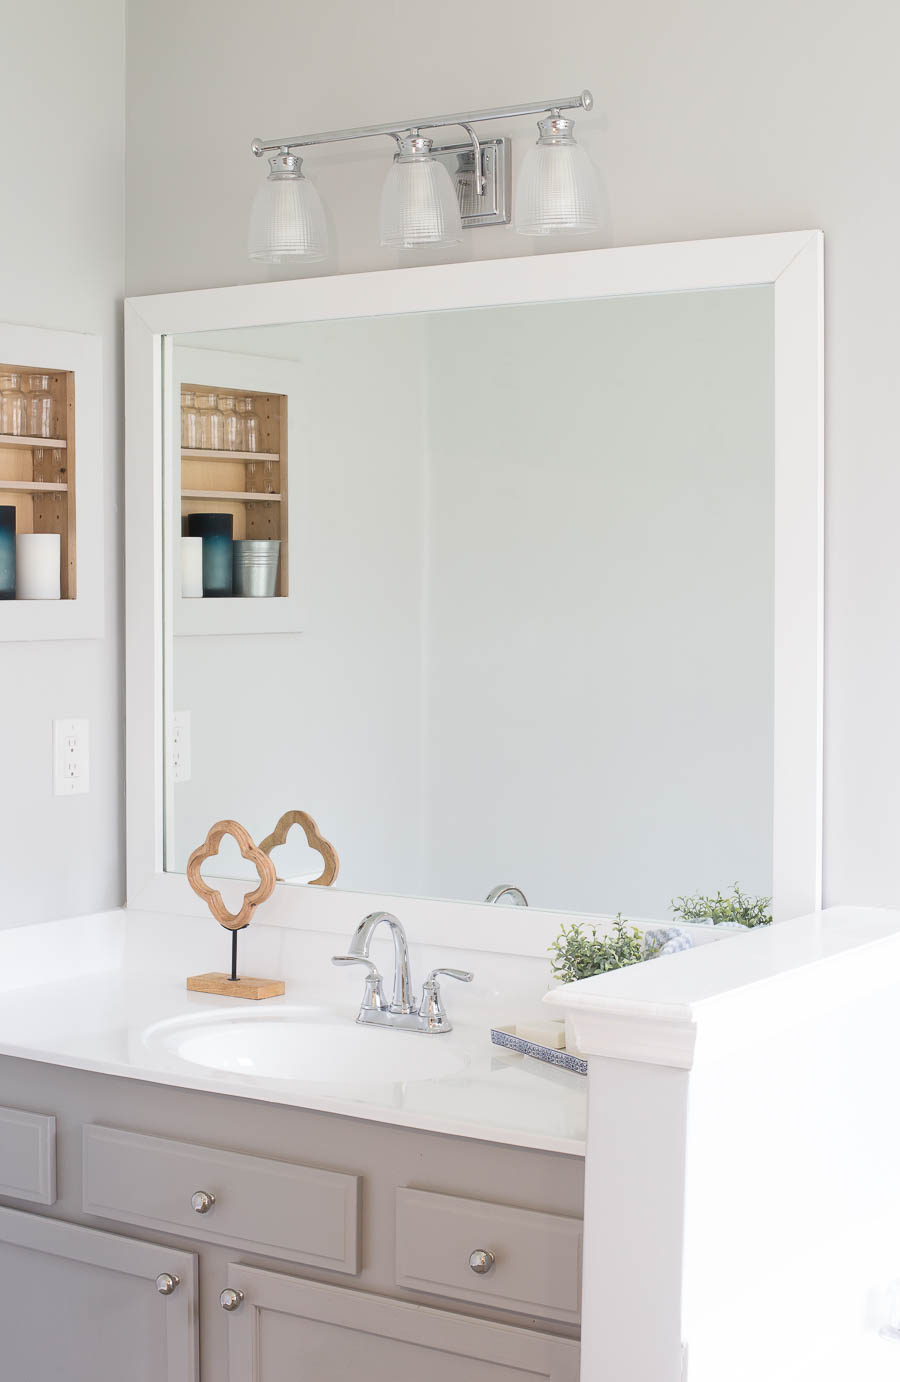 How To Frame A Bathroom Mirror In An Afternoon For Less Than $40!